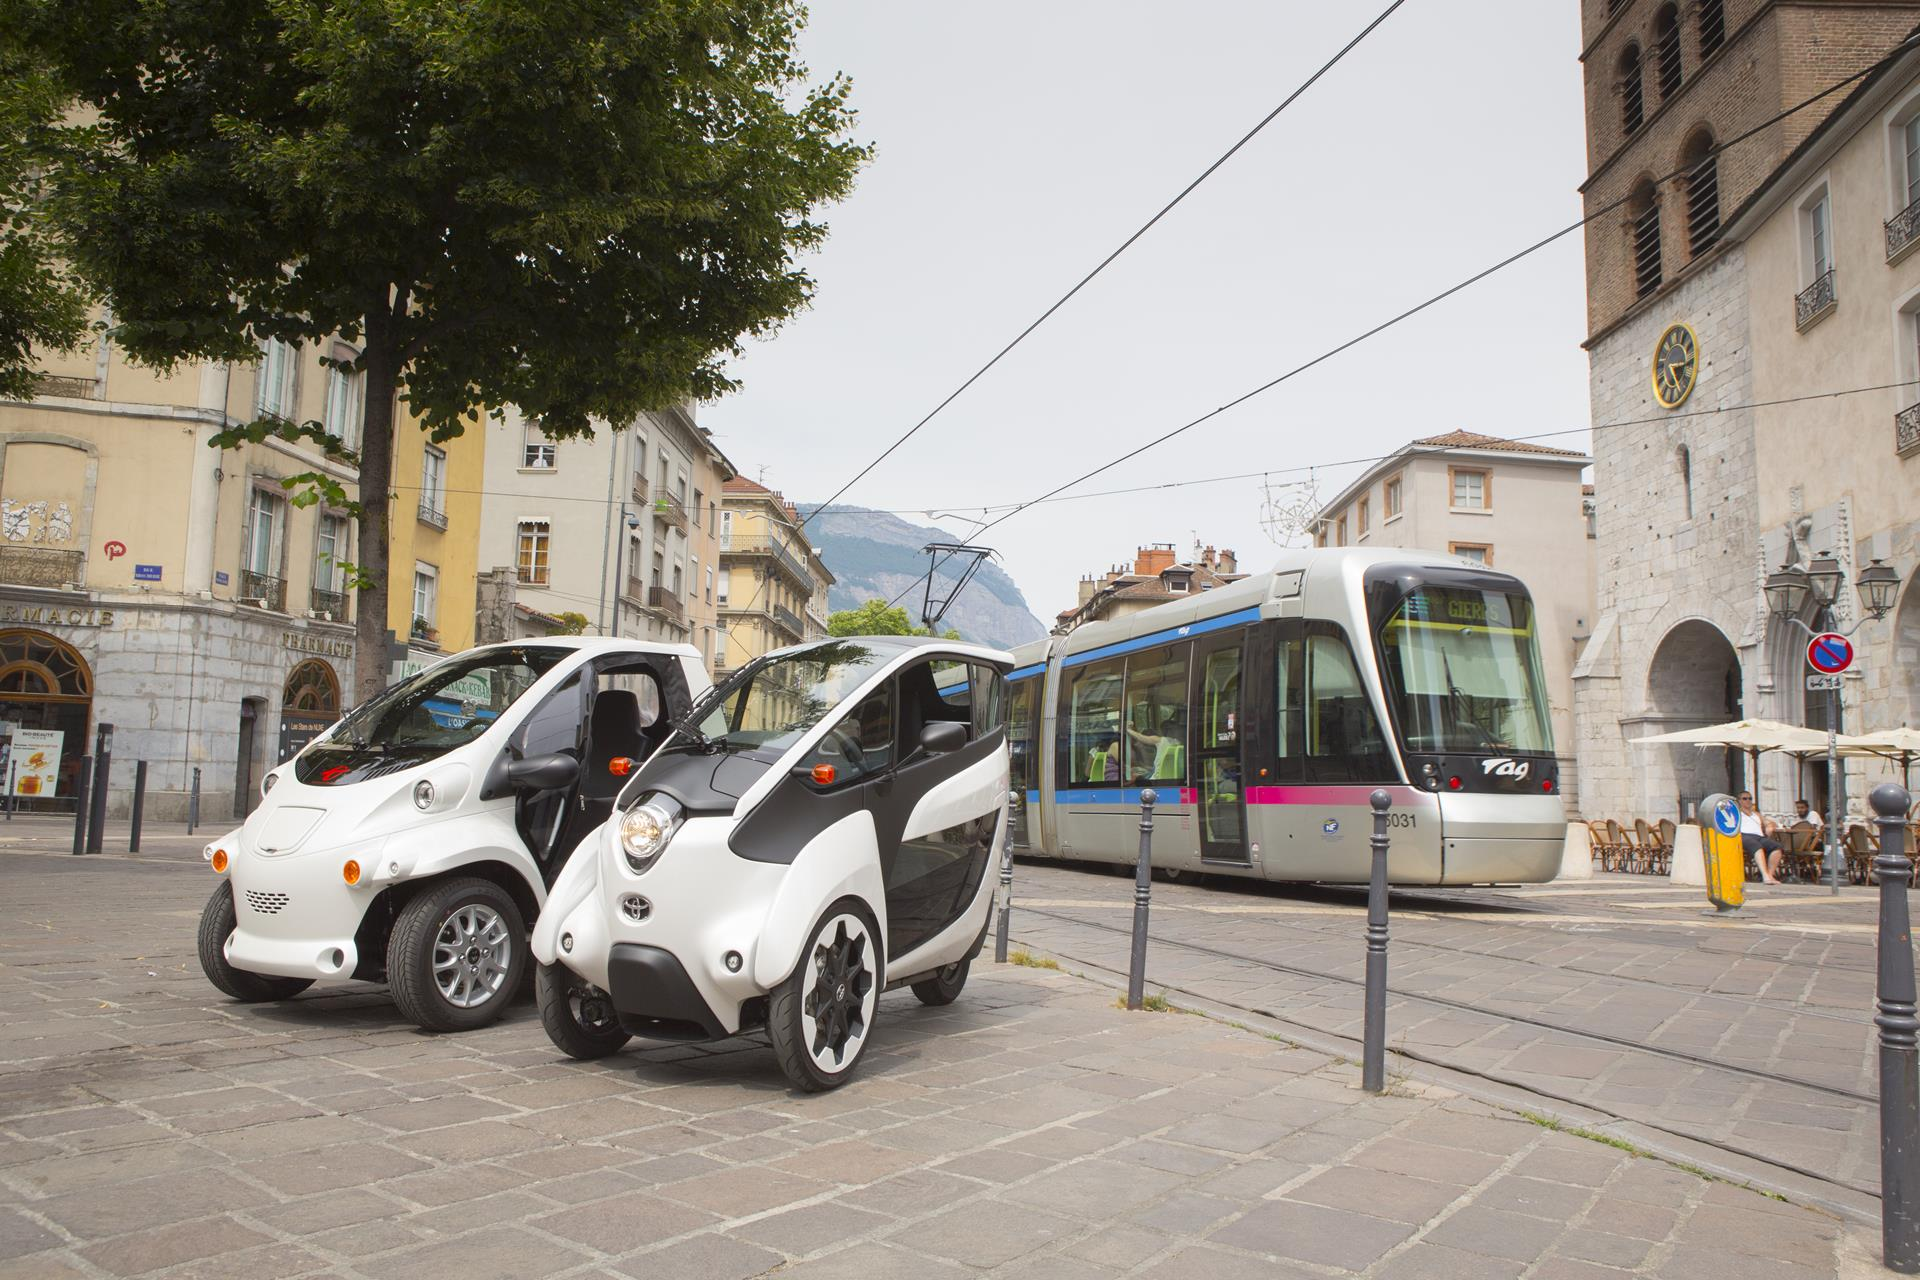 Grenoble car-sharing scheme